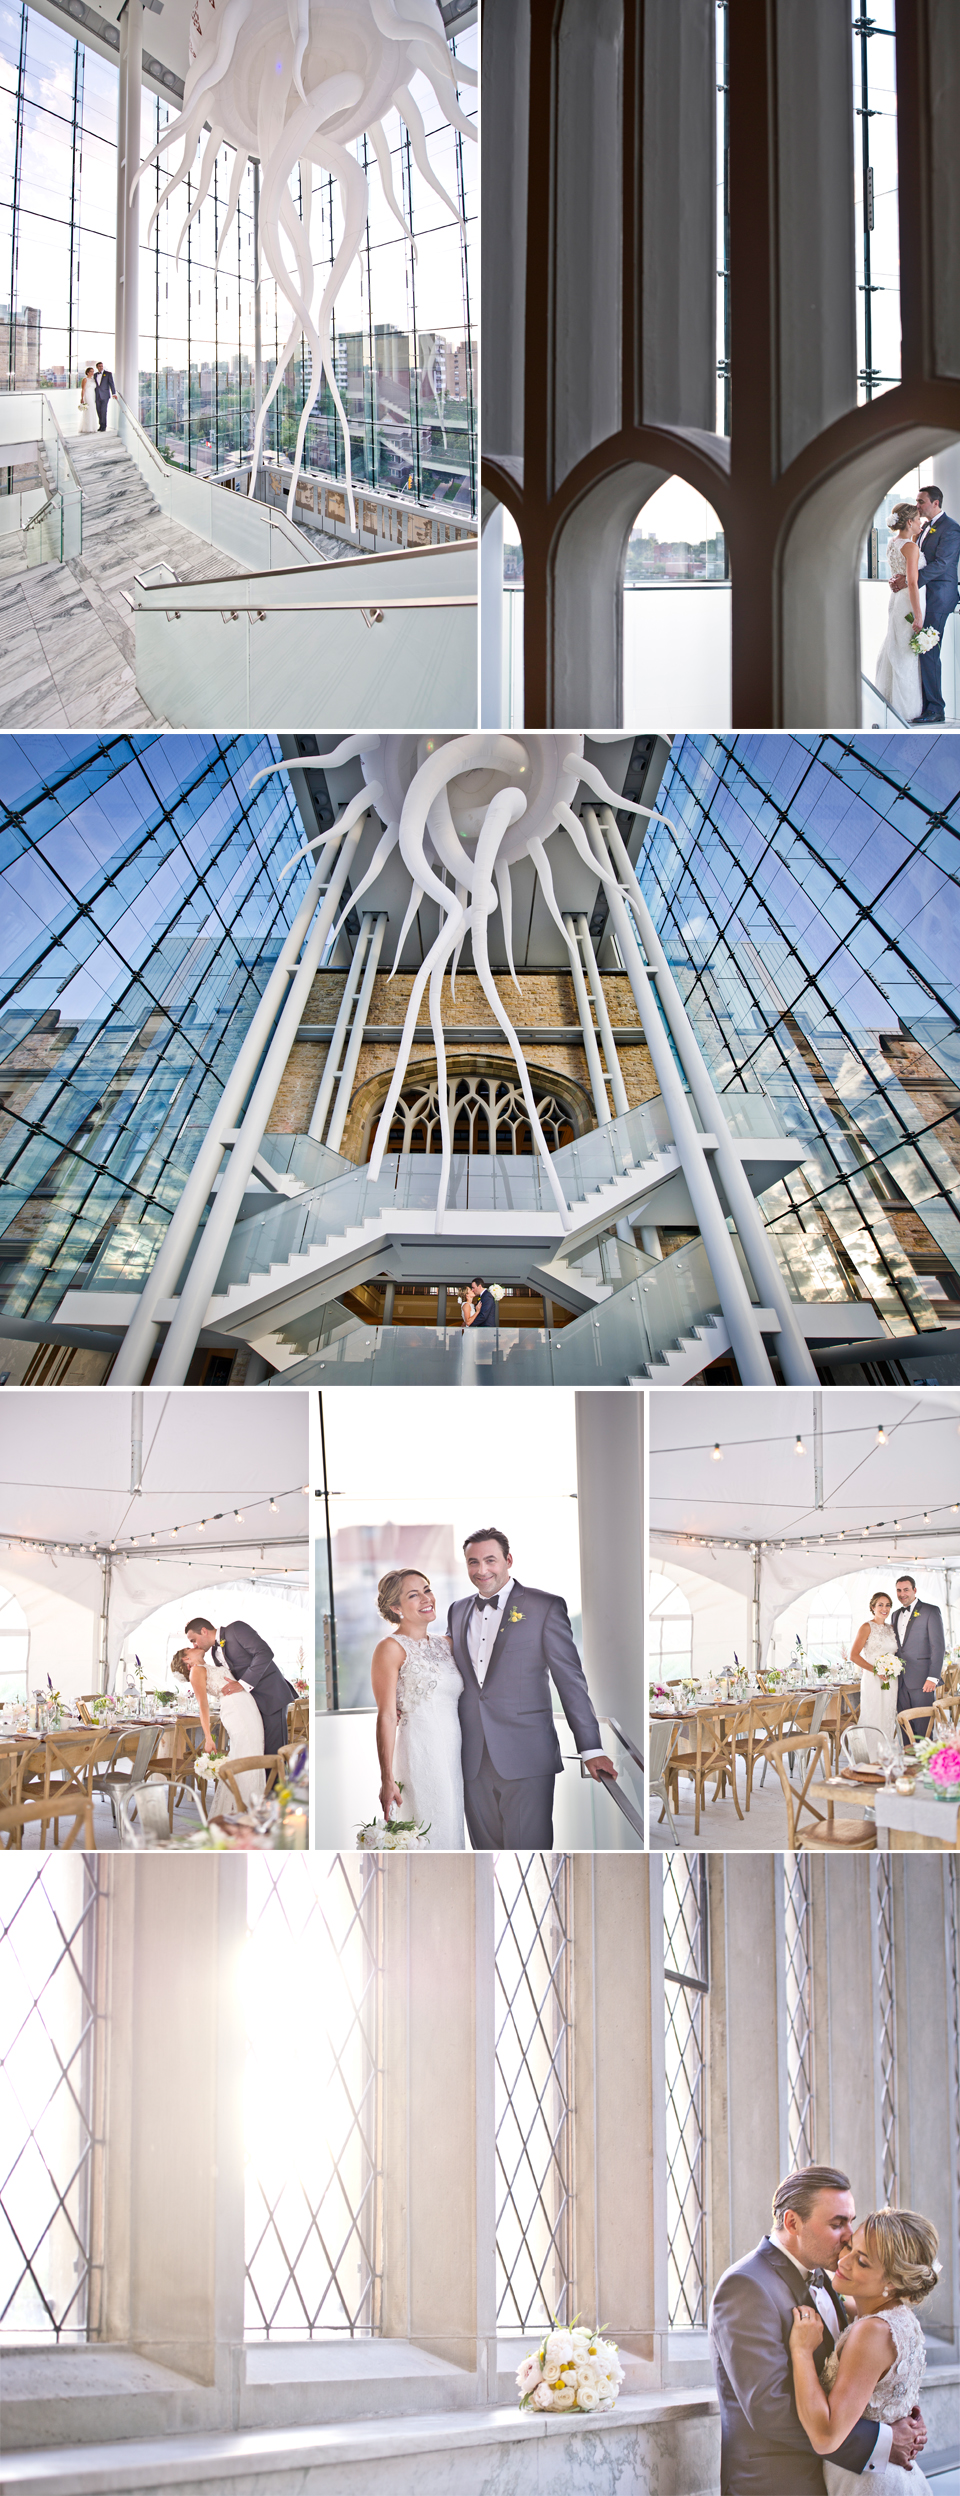 Ottawa Wedding Photographer | Creative Shoot | Chateau Laurier| Museum of Nature | Lindsay Muciy Photography | Wedding Photographer Montreal